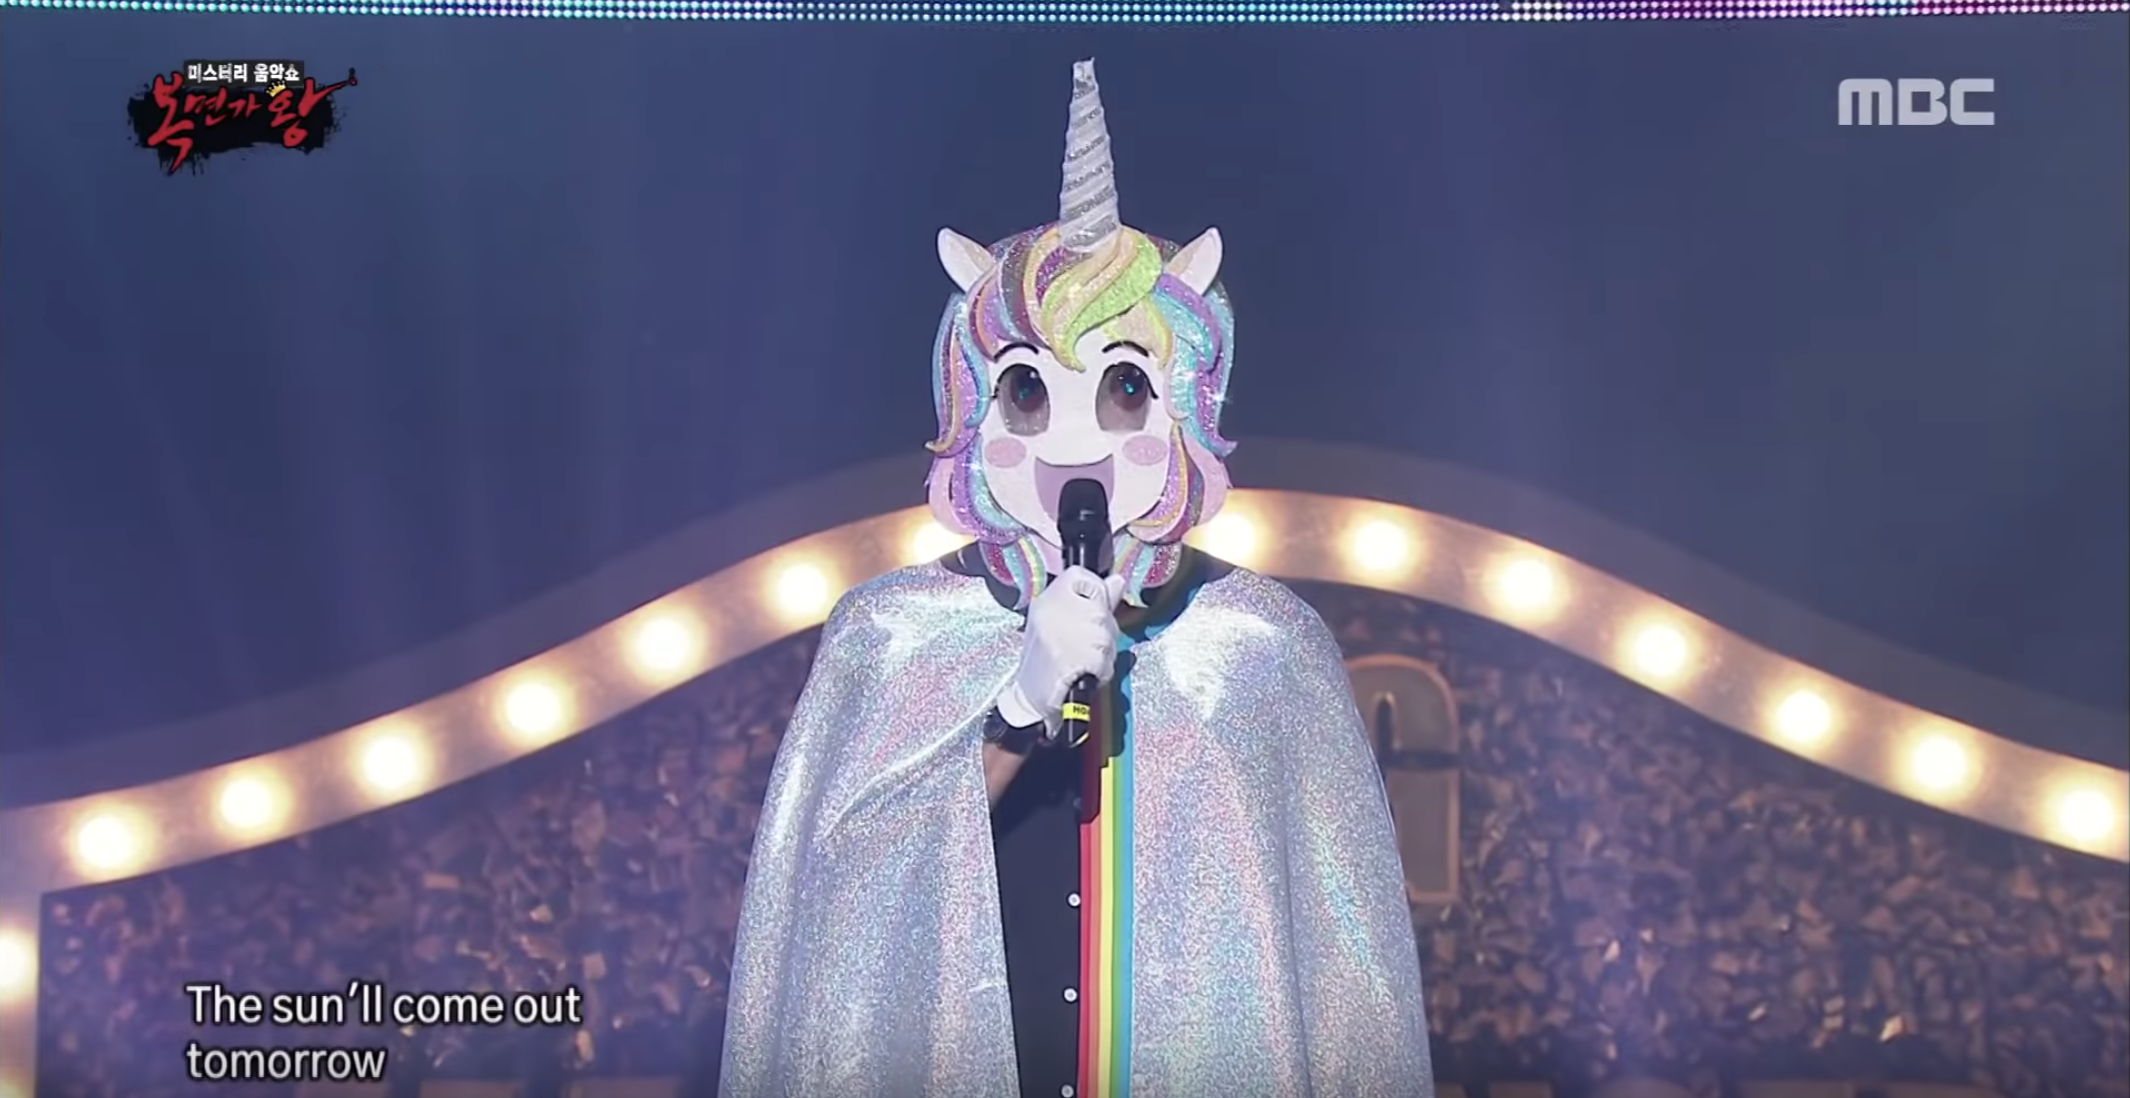 Ryan Reynolds dresses as a unicorn for surprise musical performance